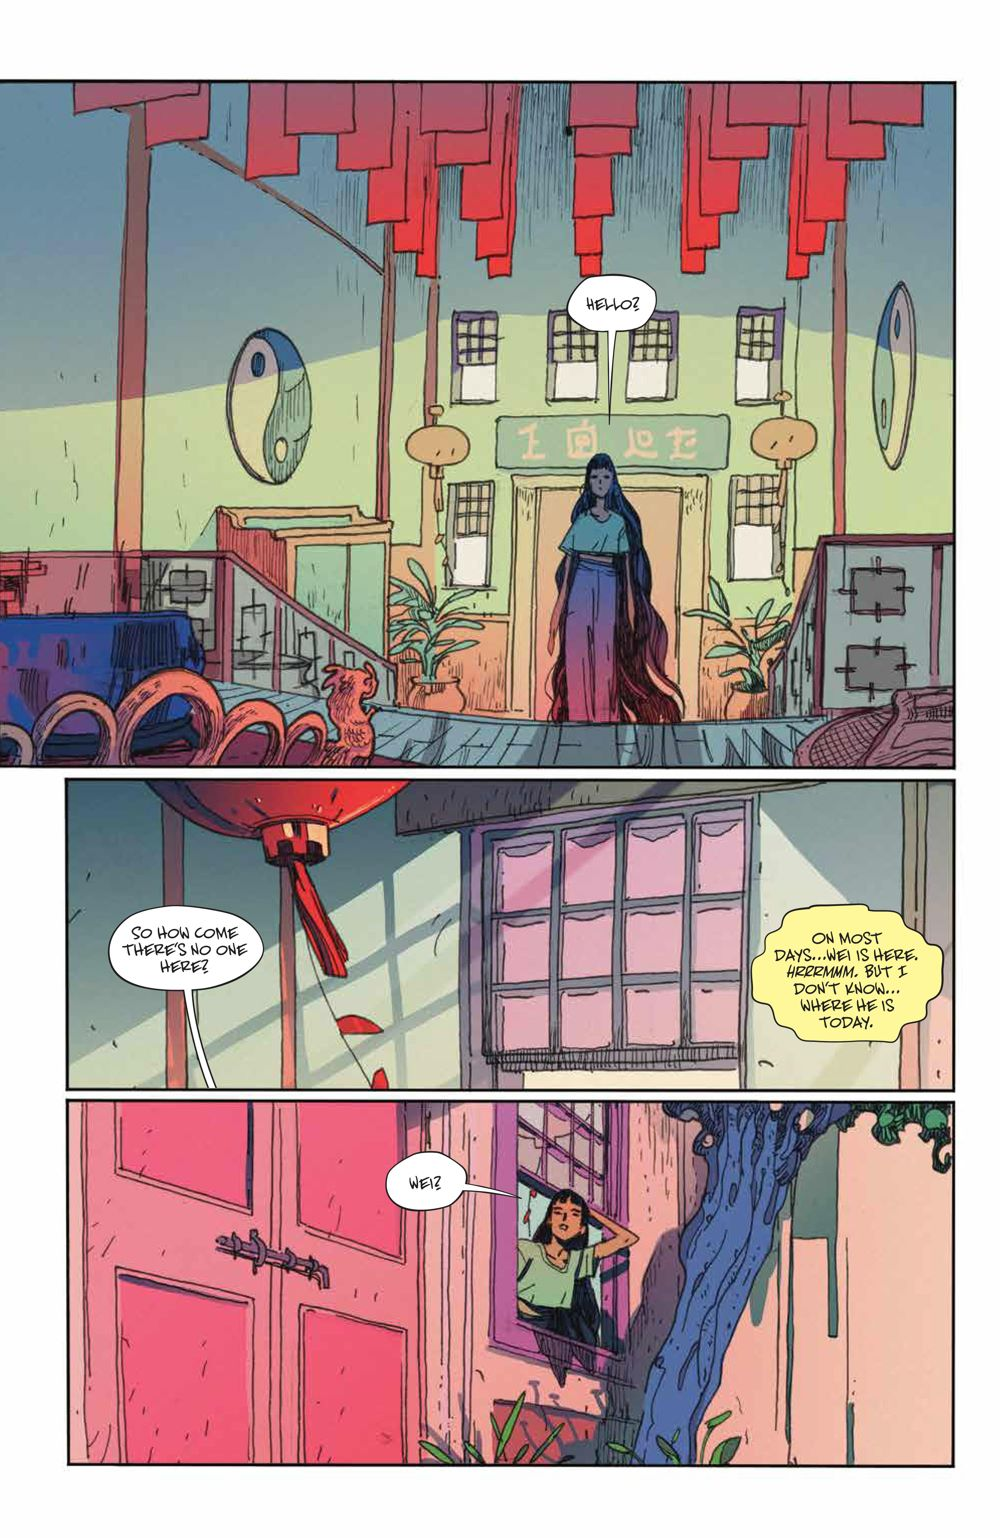 ManyDeathsLailaStarr_004_PRESS_5 ComicList Previews: MANY DEATHS OF LAILA STARR #4 (OF 5)